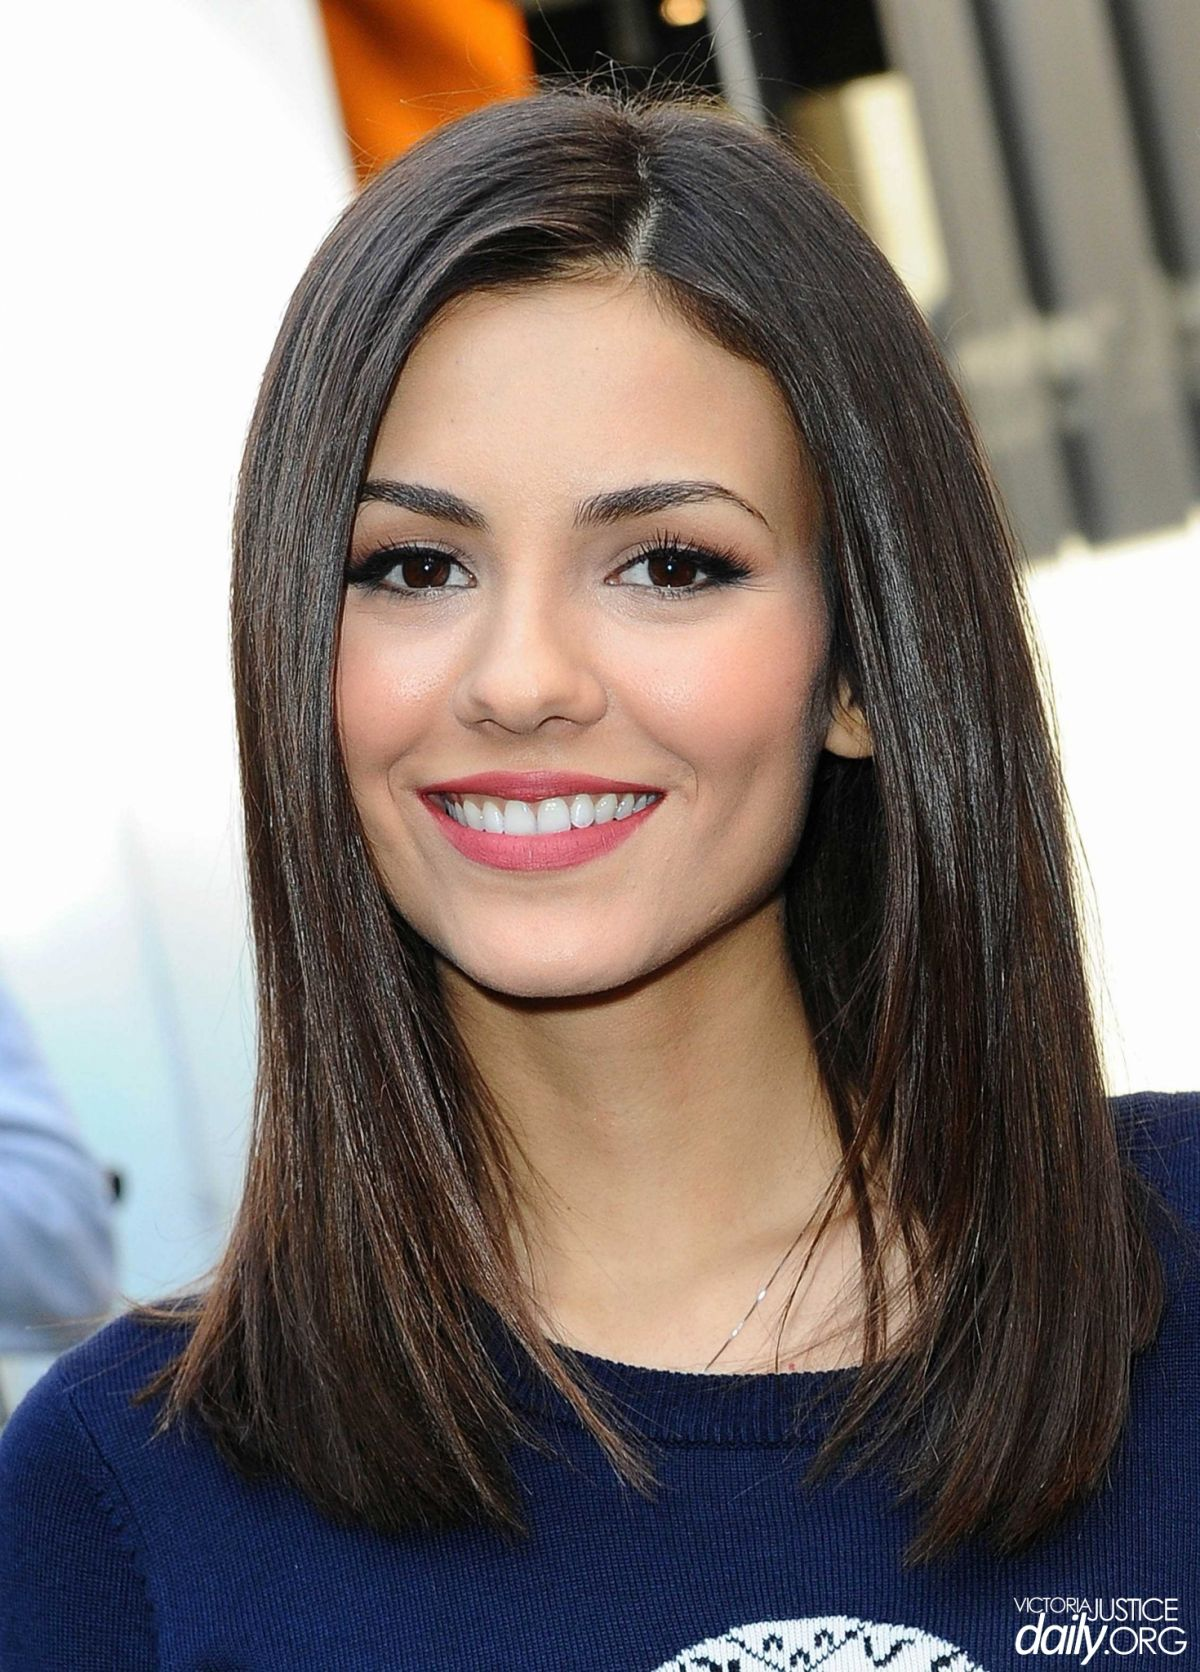 78 Best images about victoria justice on Pinterest | Victorious